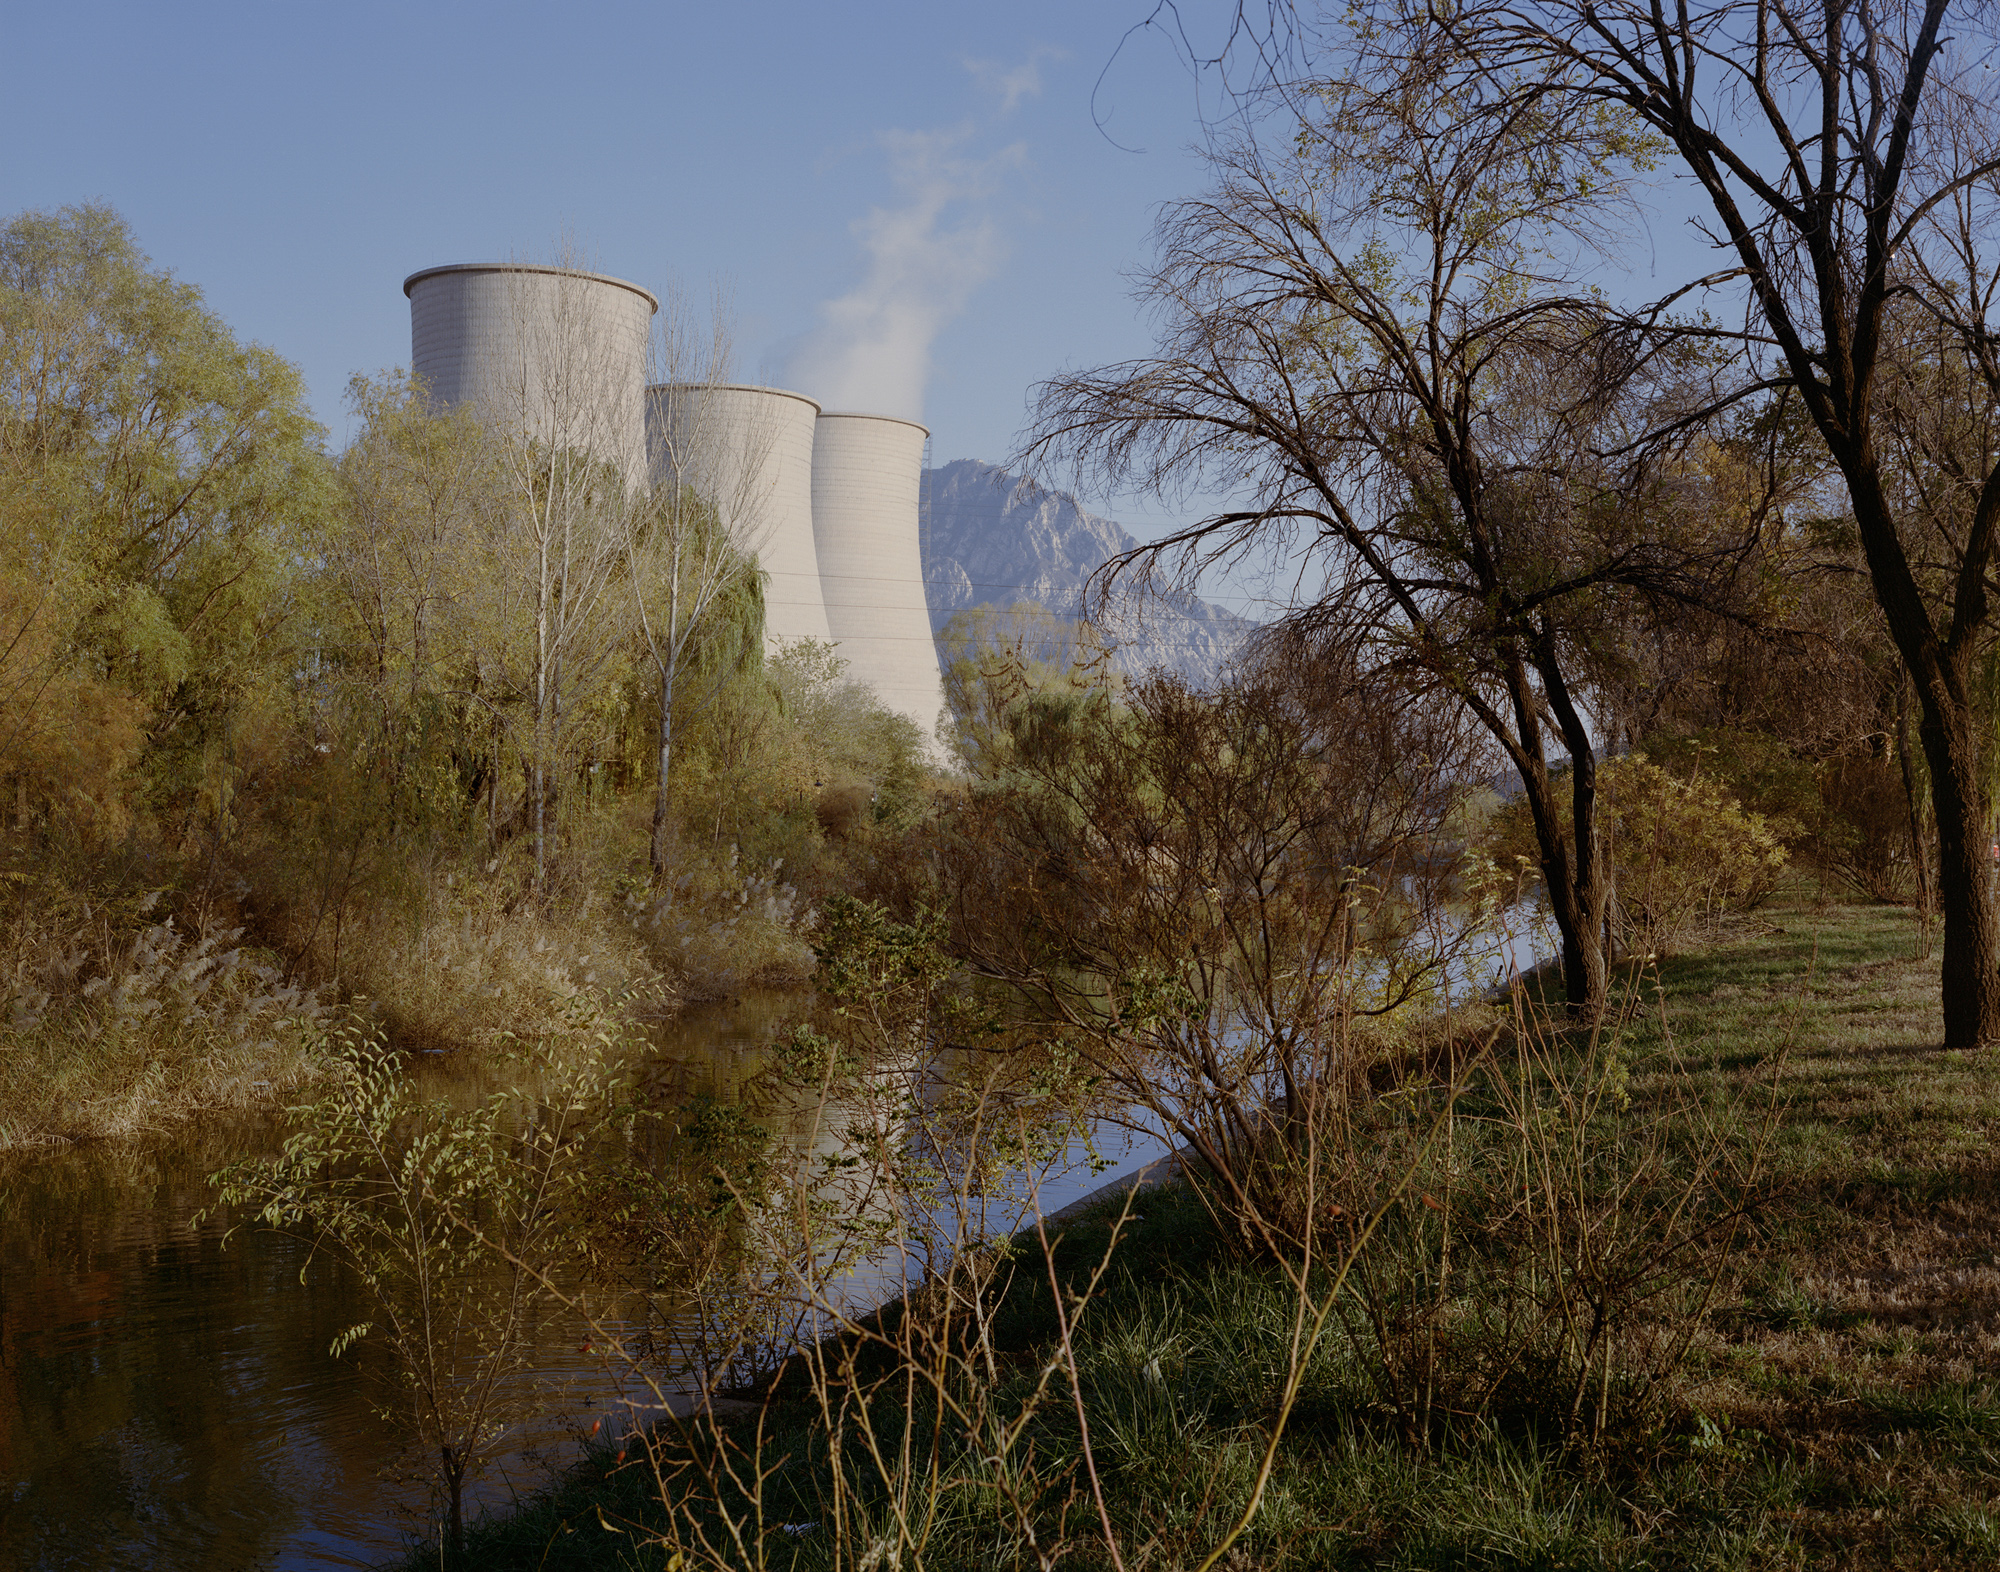 "At Xiahuayuan Power Plant, only one of three cooling towers still functions, in the city of Zhangjiakou, Hebei province, October 2017. The Xiahuayuan district of Zhangjiakou, once abundant in coal, is also on the 2013 ""resource-based cities"" list, identified as ""declining."""